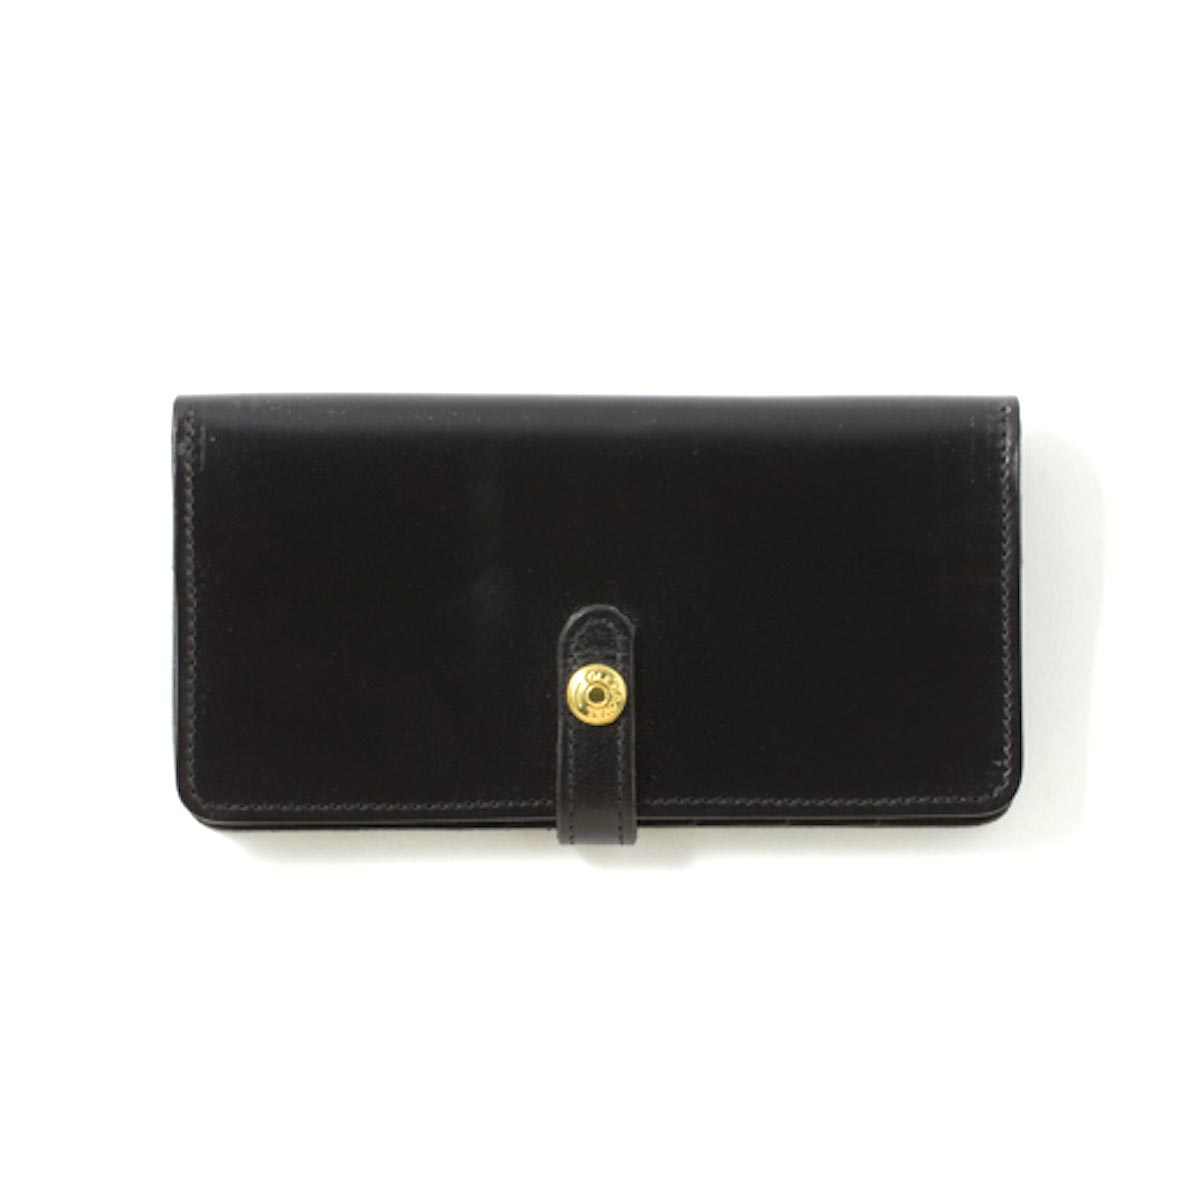 GLENROYAL / ROUND LONG PURSE -NEW BLACK